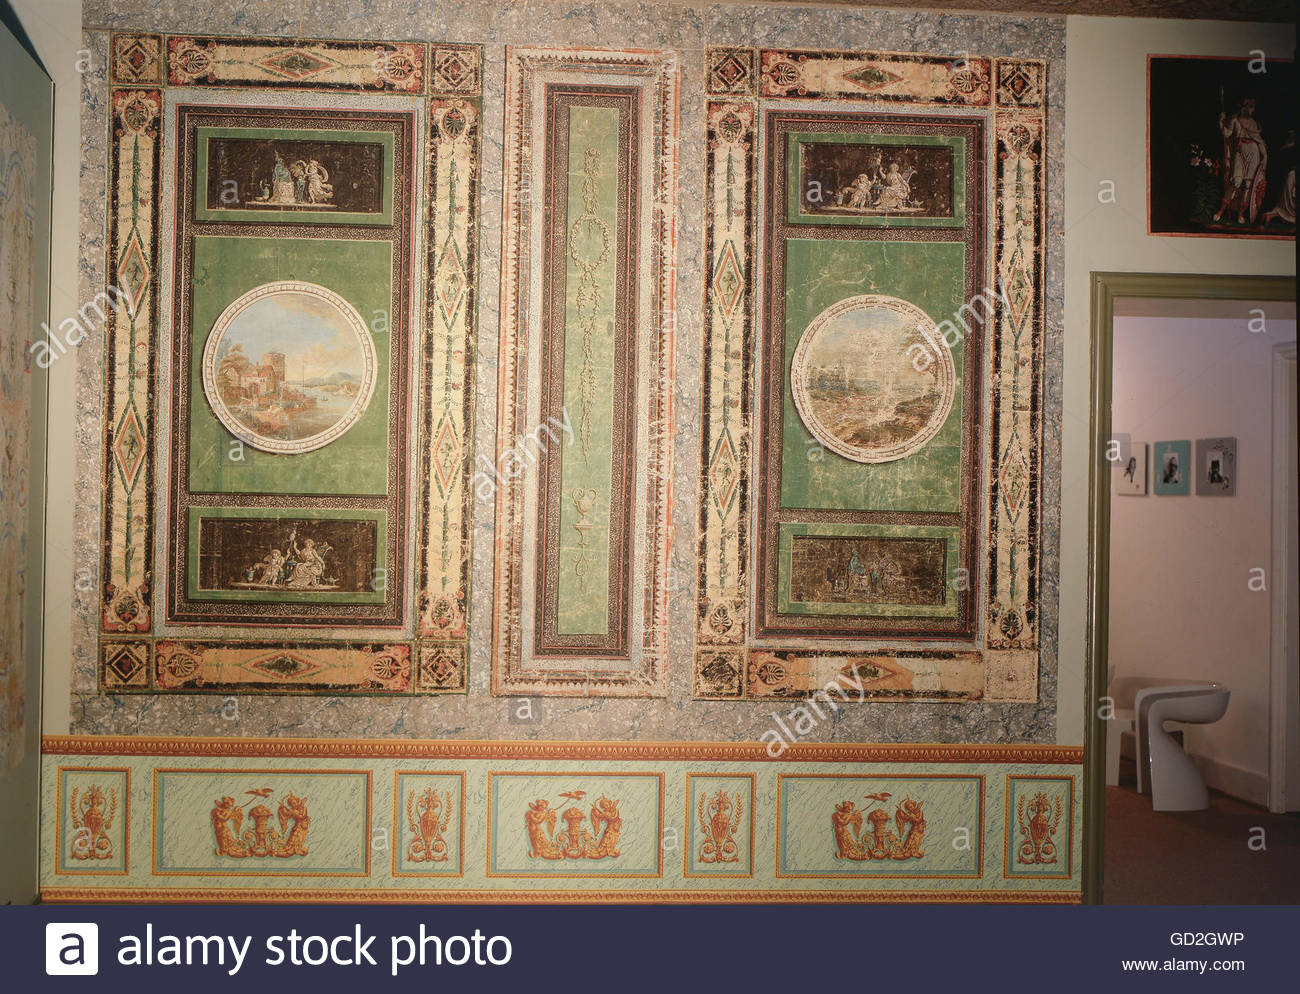 fine arts wallpaper Pompeian cabinet after mural paintings 1300x994